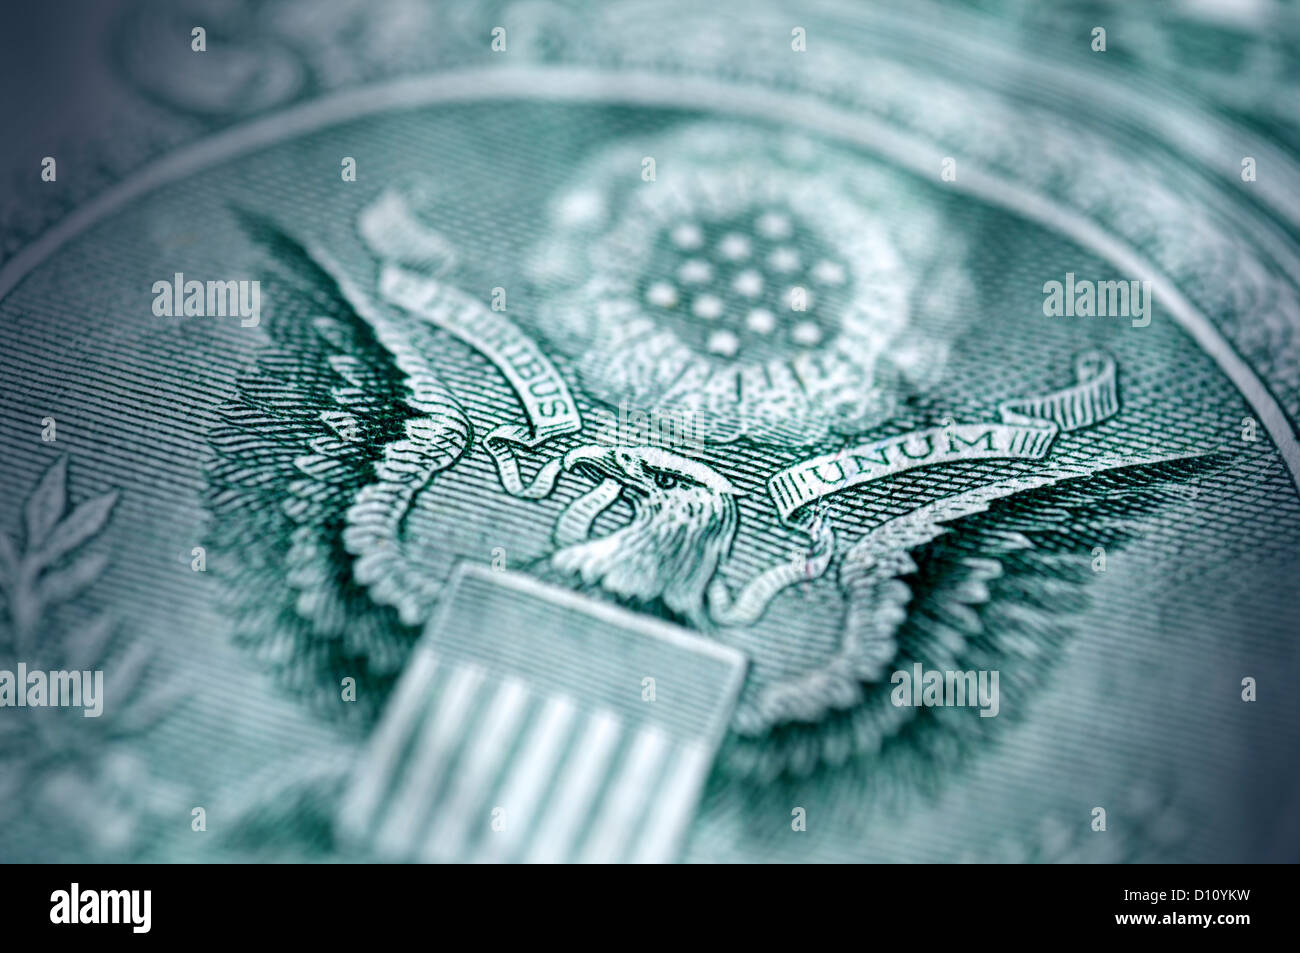 Detail of eagle on a US dollar - Stock Image